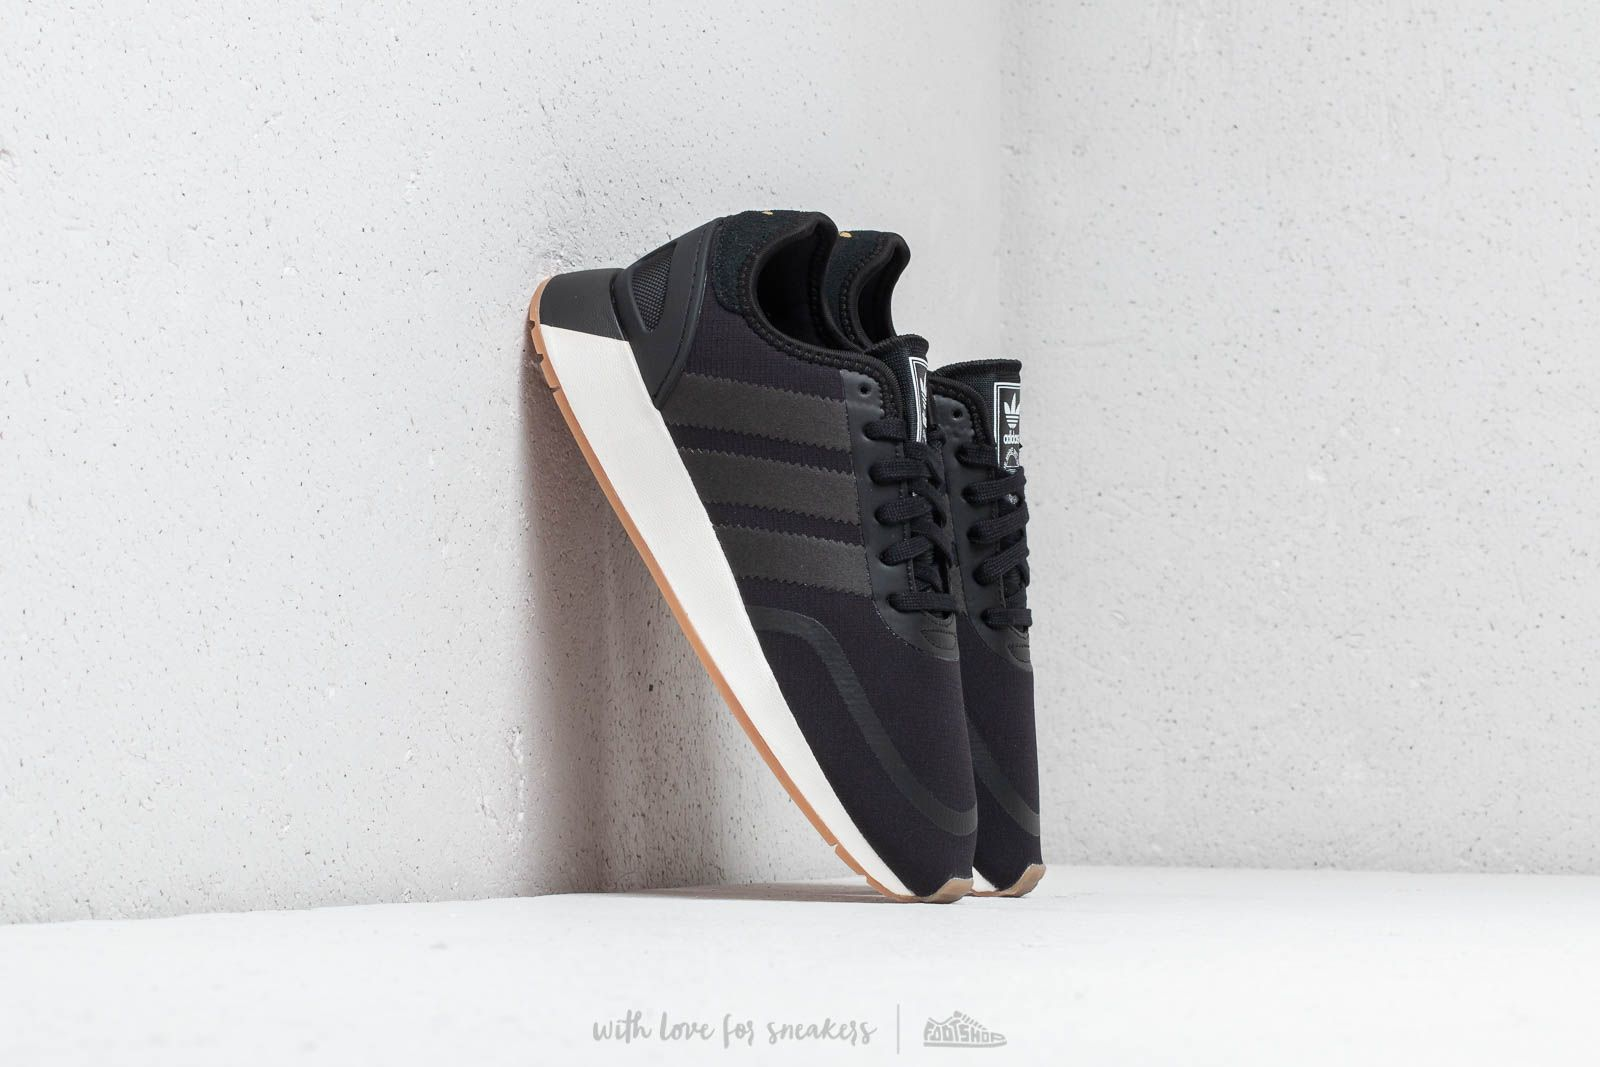 adidas N-5923 W Core Black  Core Black  Gum 4 at a great b1578d67f